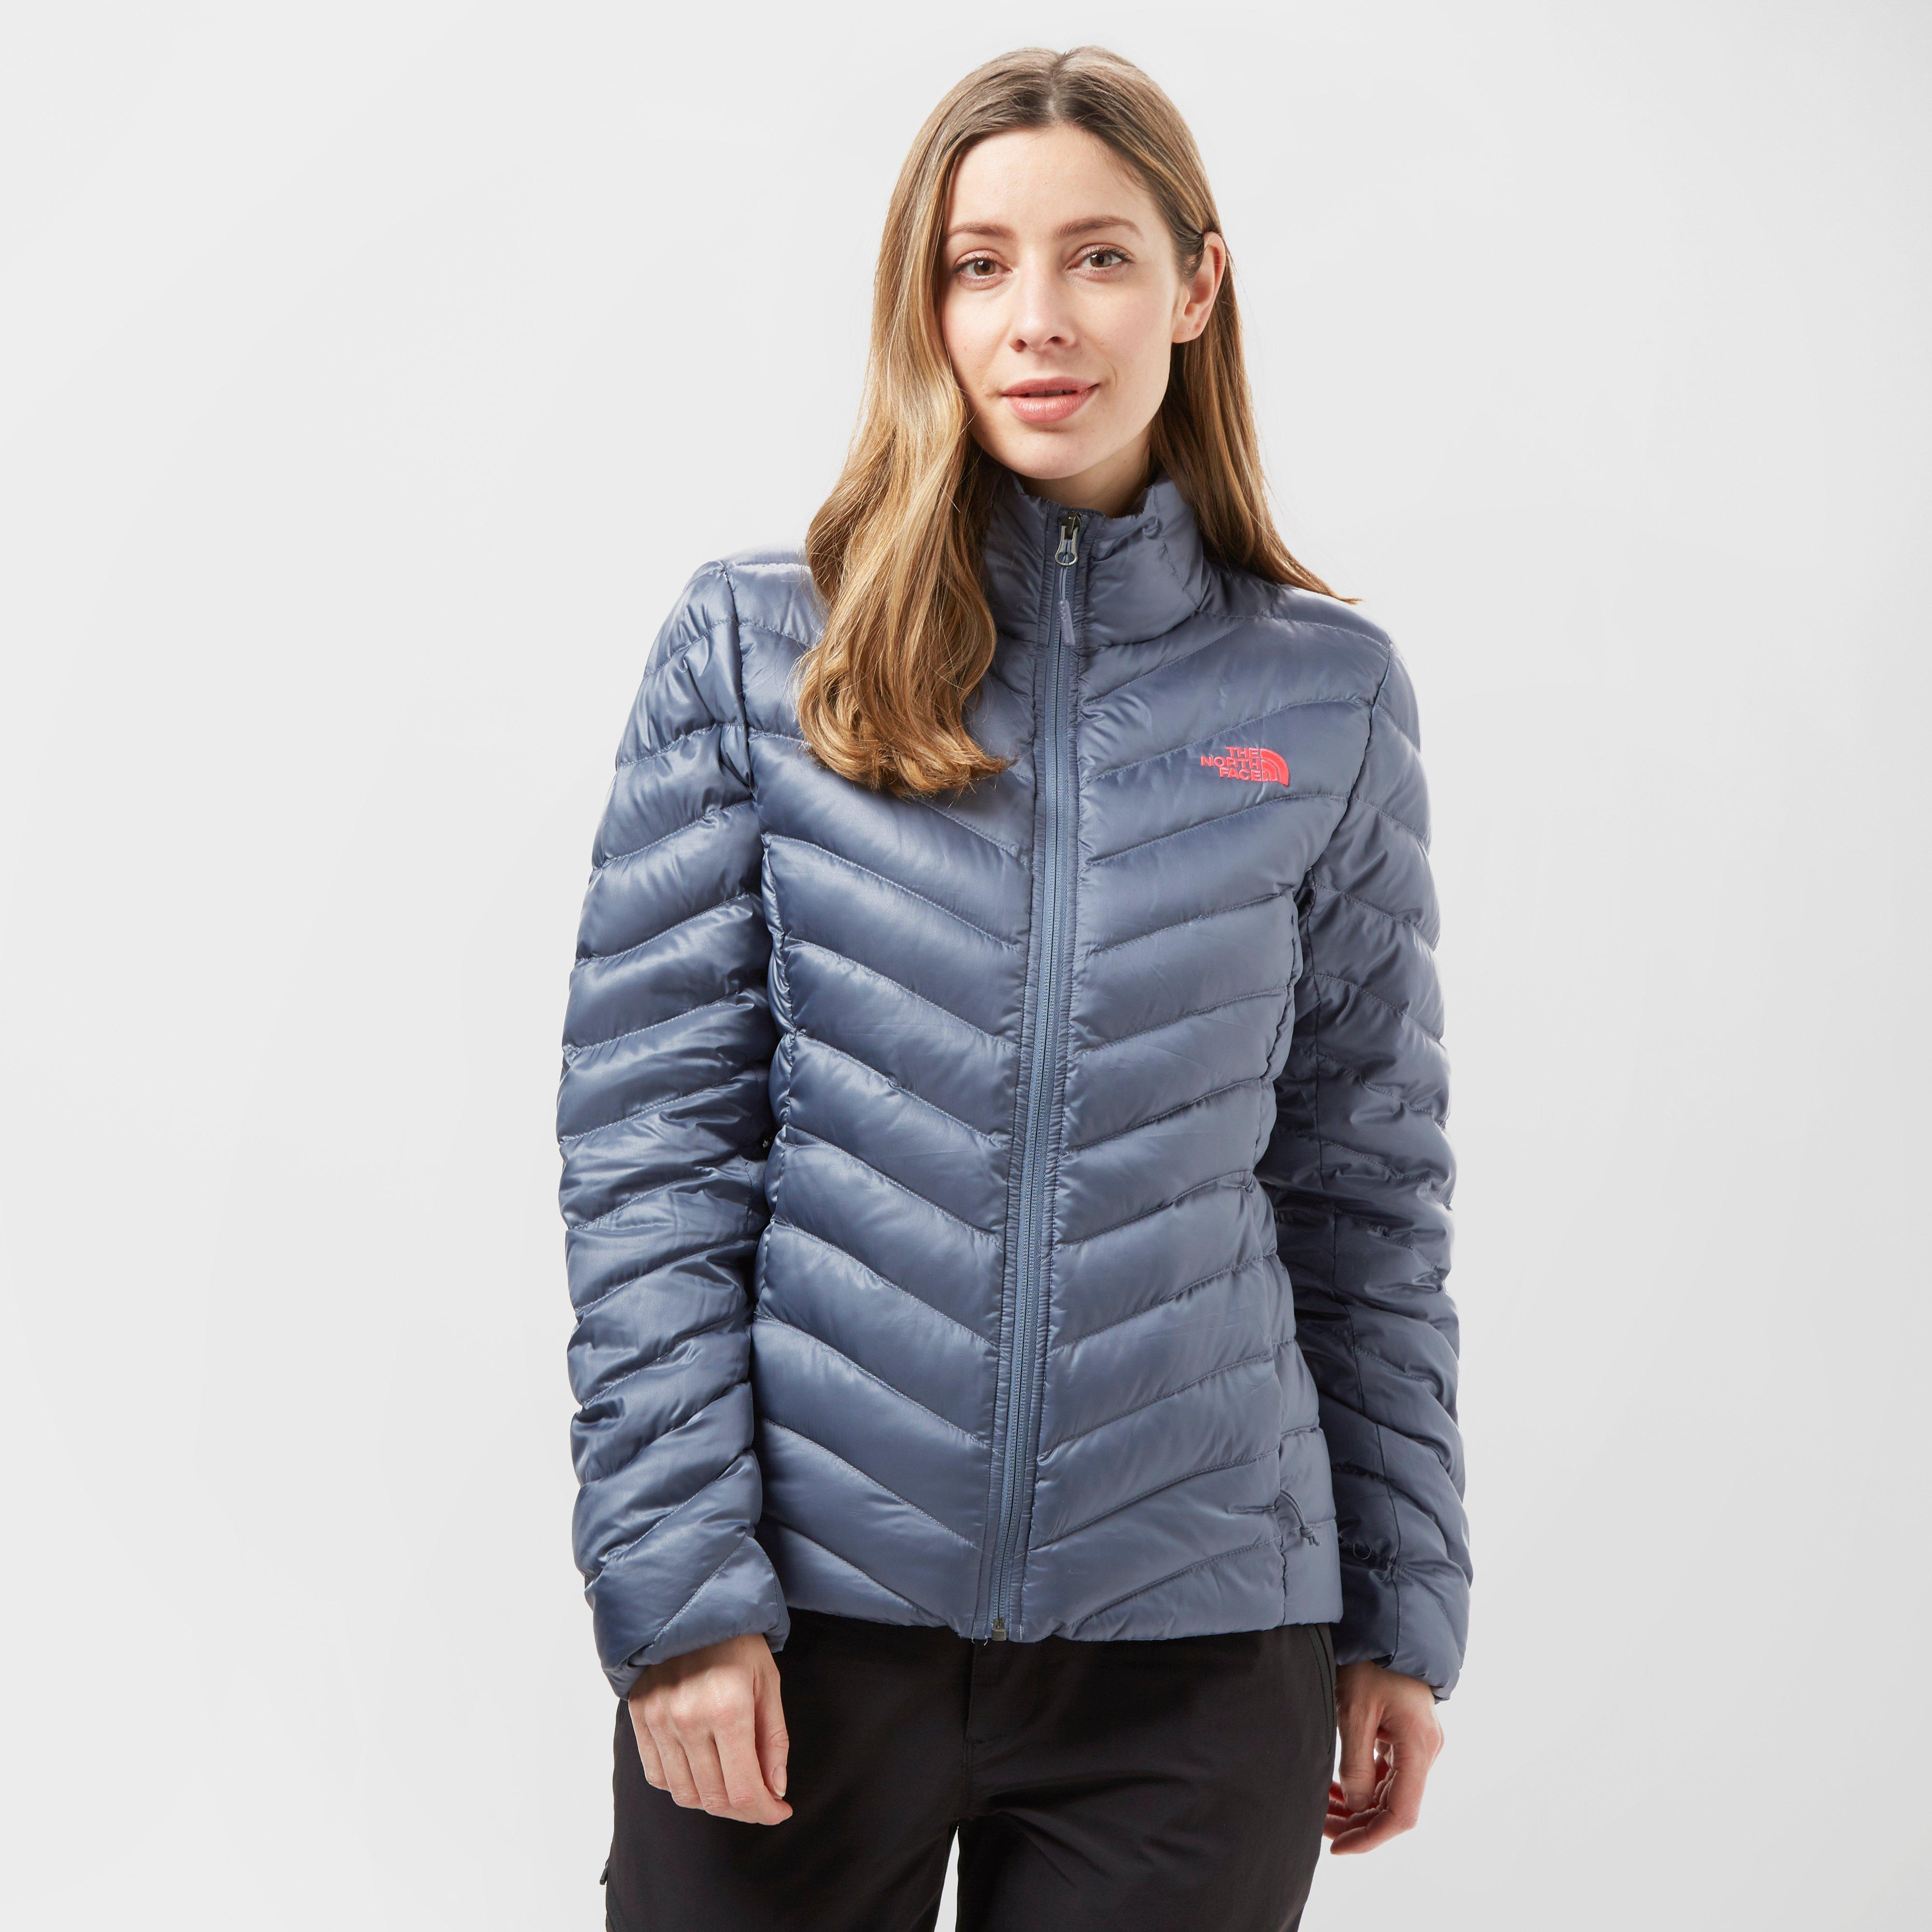 The North Face Trevail Jacket Women S Compare Outdoor Jacket